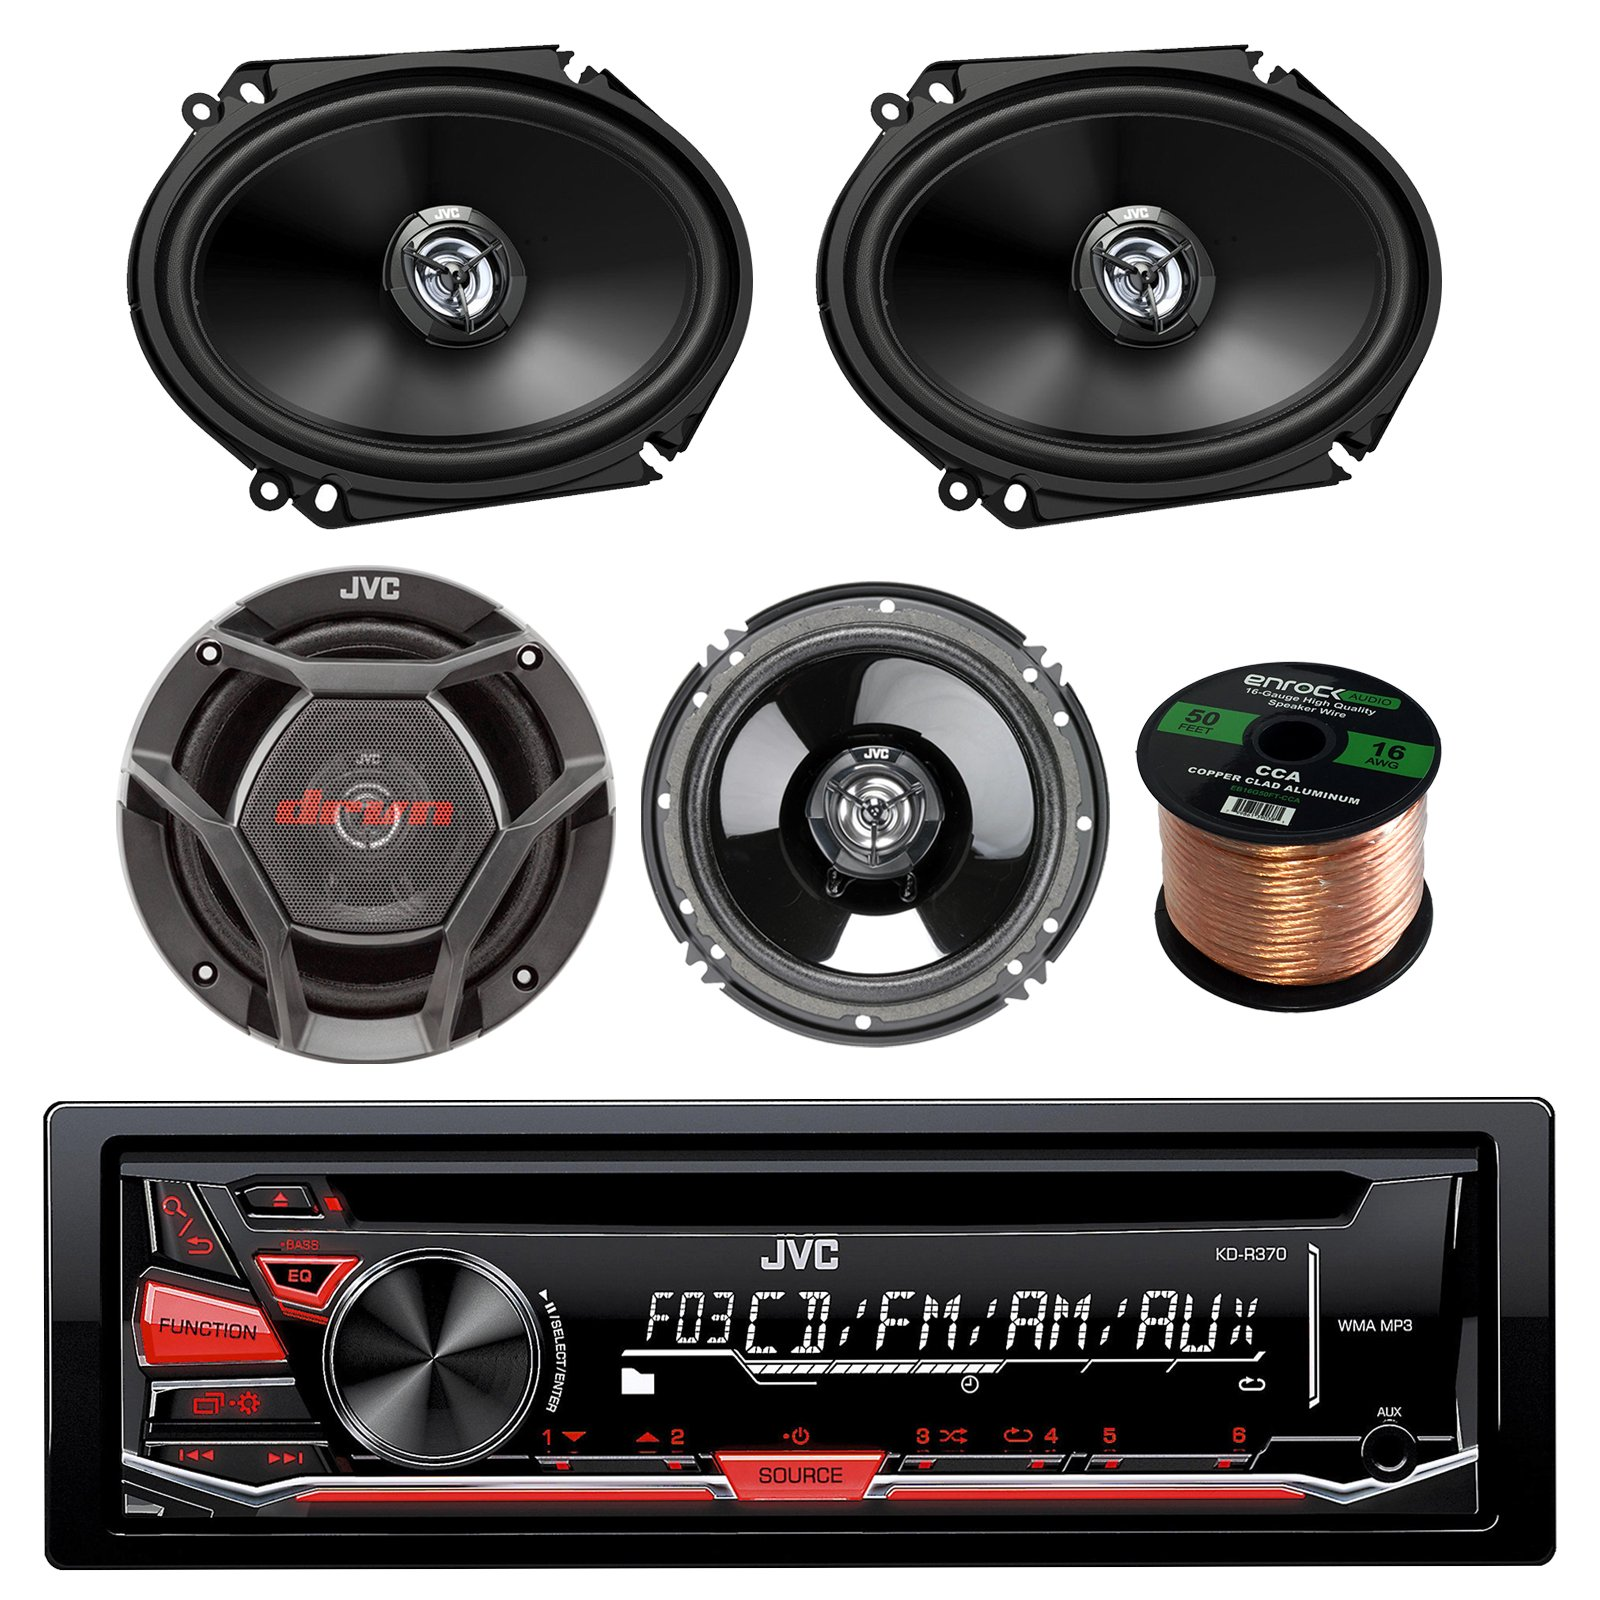 JVC KD-R370 CD/MP3 AM/FM Radio Player Car Receiver Bundle Combo With 2x DR6820 300-Watt 6x8'' Inch Vehicle Coaxial Speakers + 2x DR620 6.5'' Inch 2-Way Audio Speakers + Enrock 50 Feet 16-Gauge Wire by JVCAudioBundle